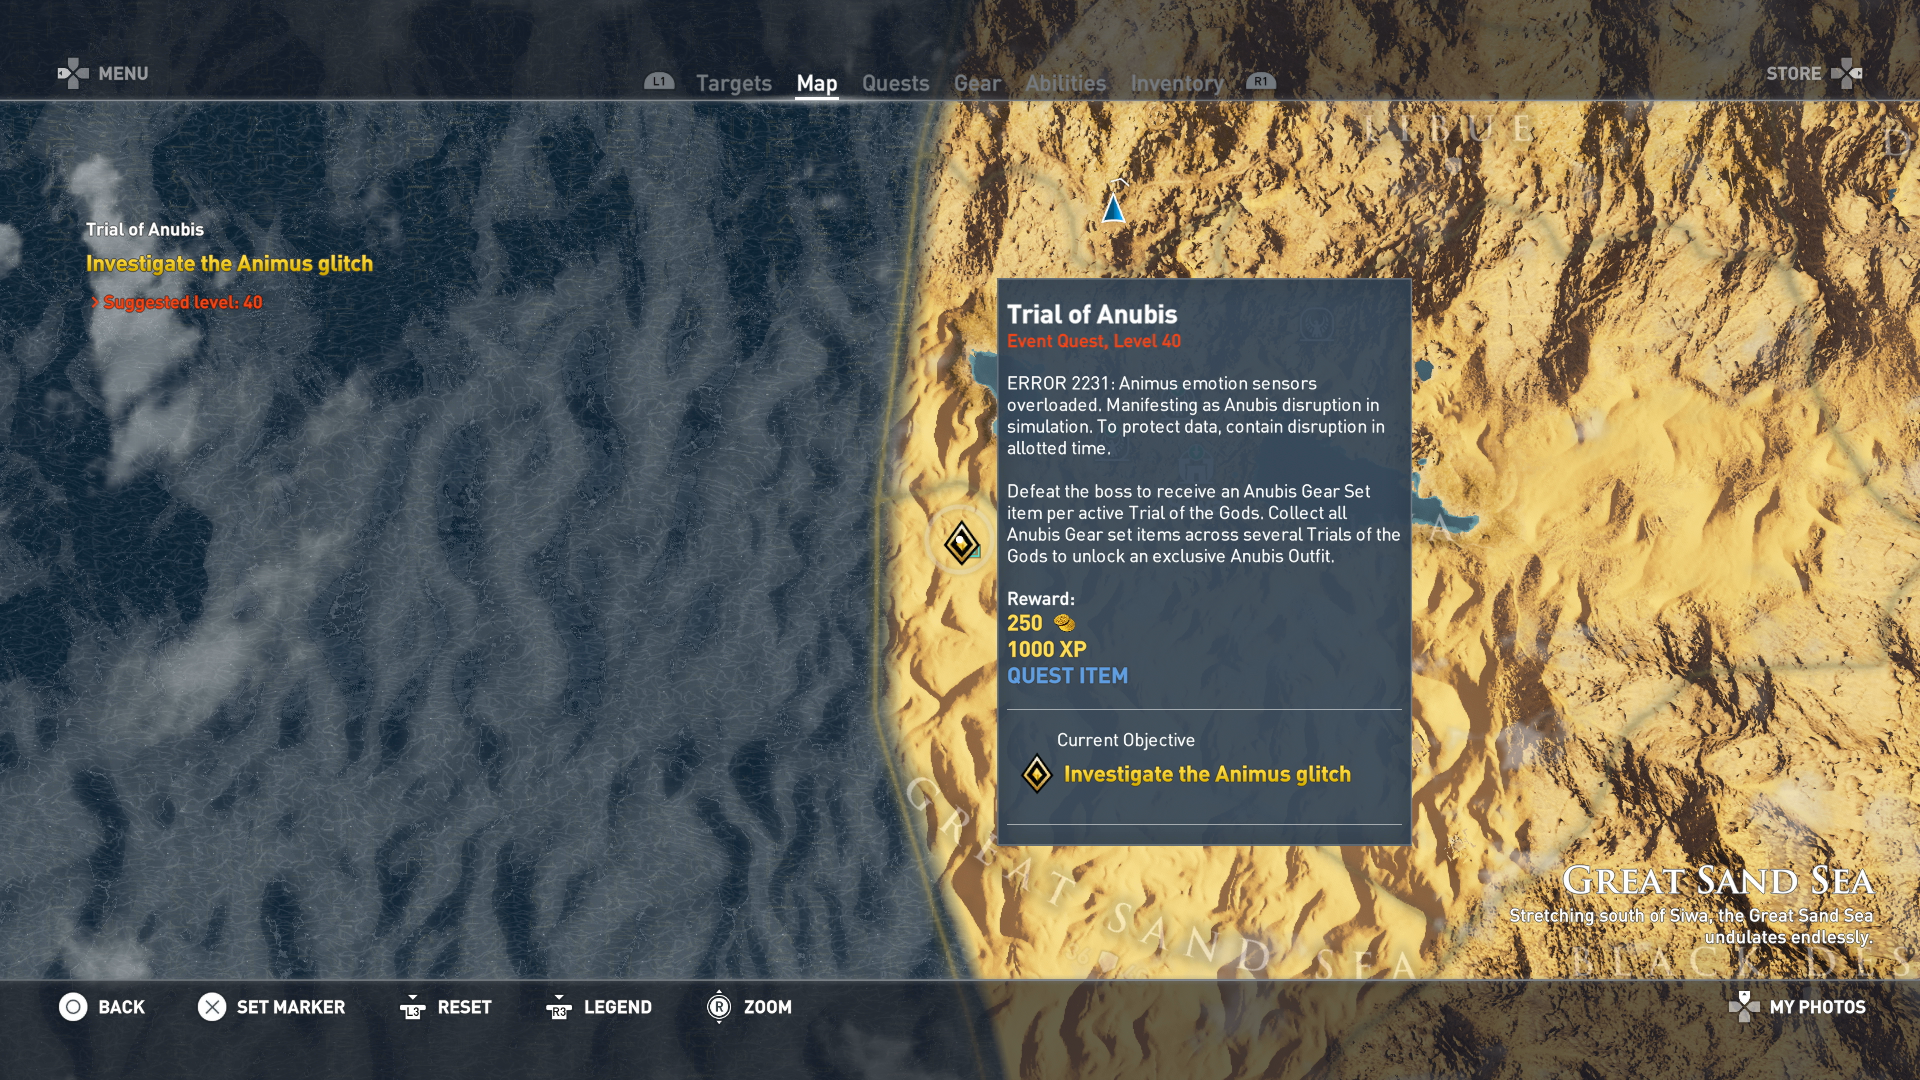 Assassin's Creed Origins Trials of the Gods Guide - How to